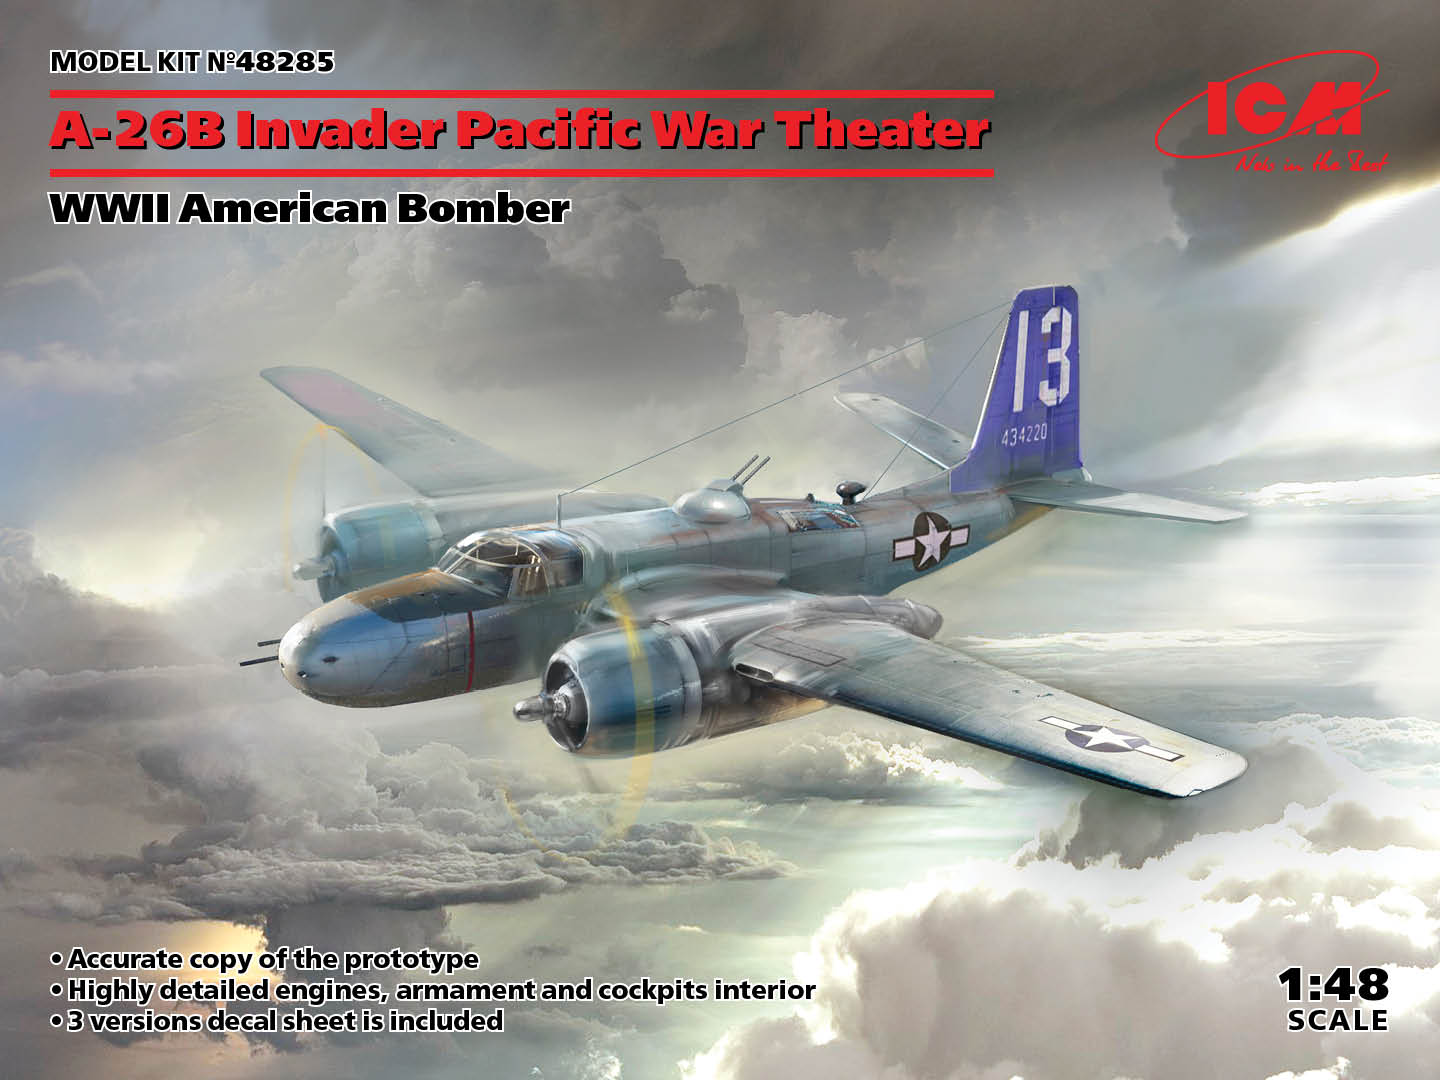 ICM 1/48 A-26B Invader Pacific War Theater, WWII American Bomber - zvìtšit obrázek